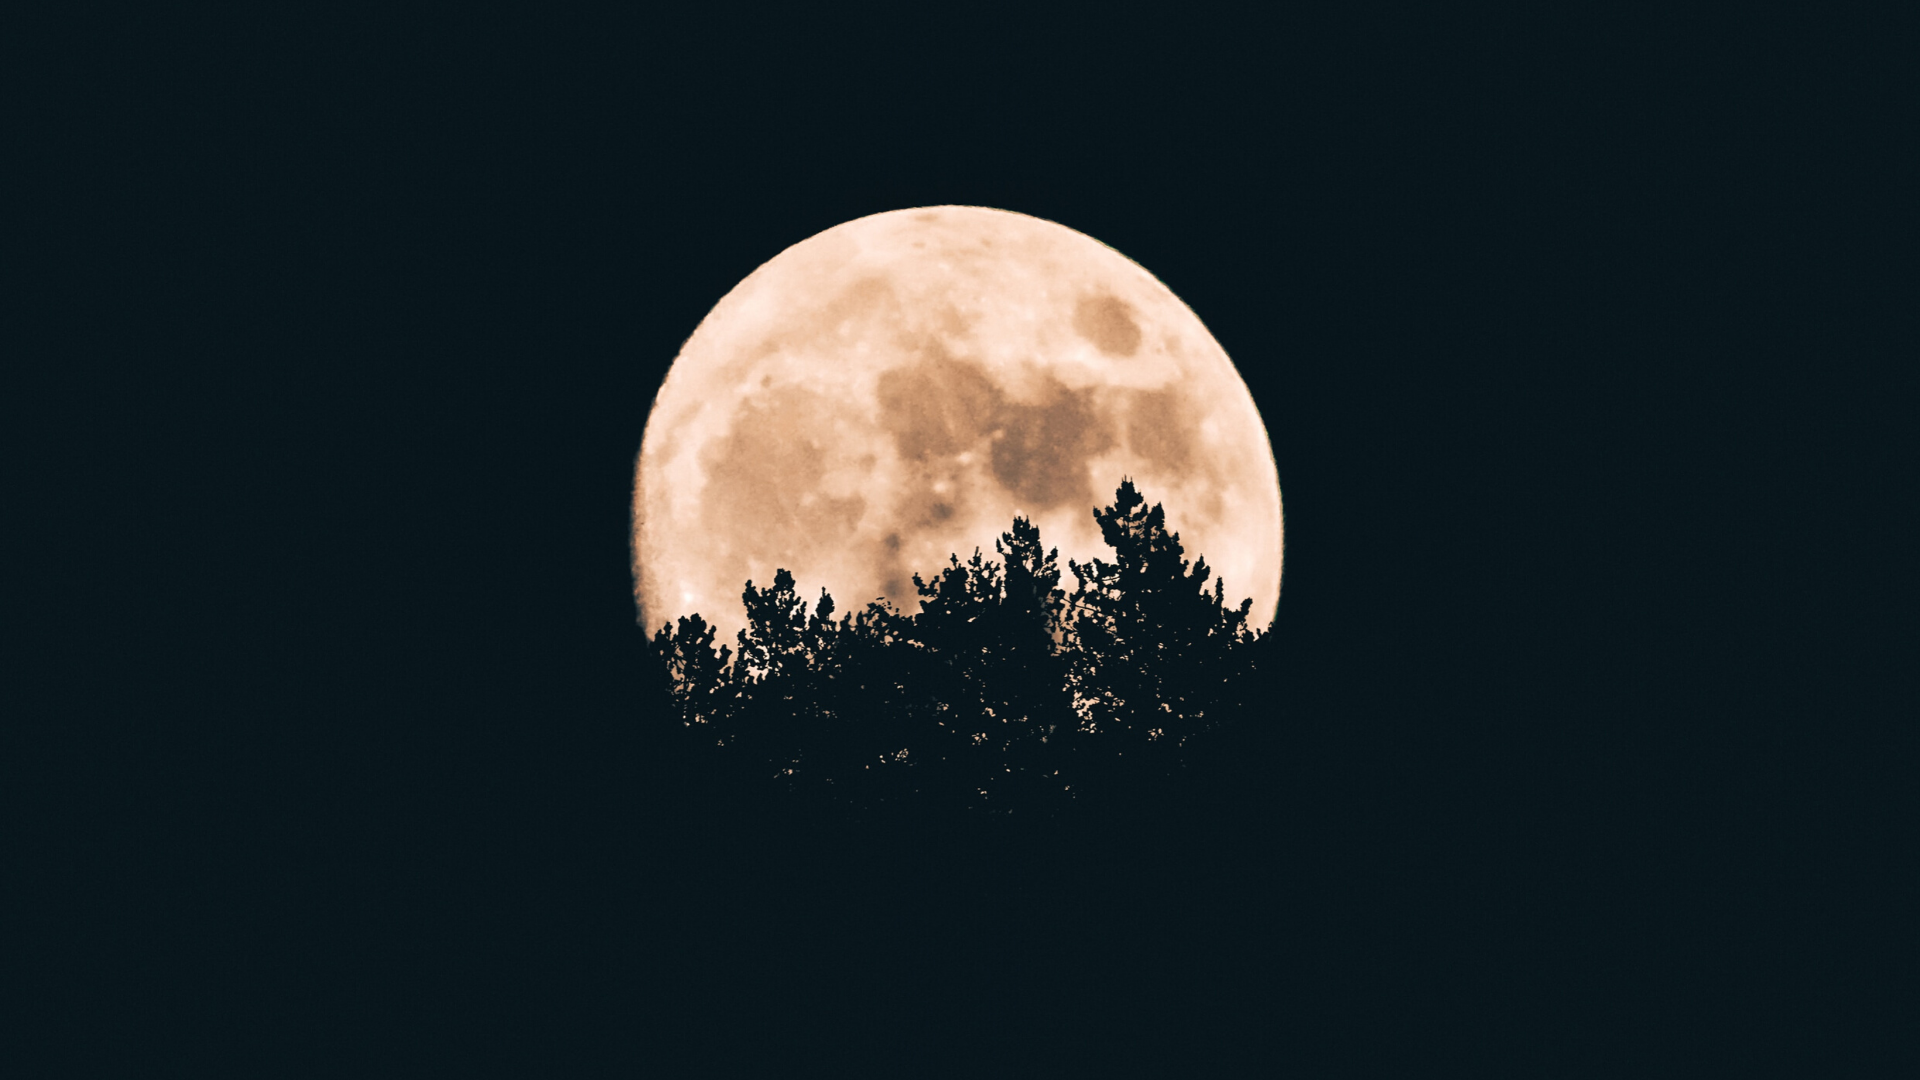 full moon Photo by Aron Visuals on Unsplash